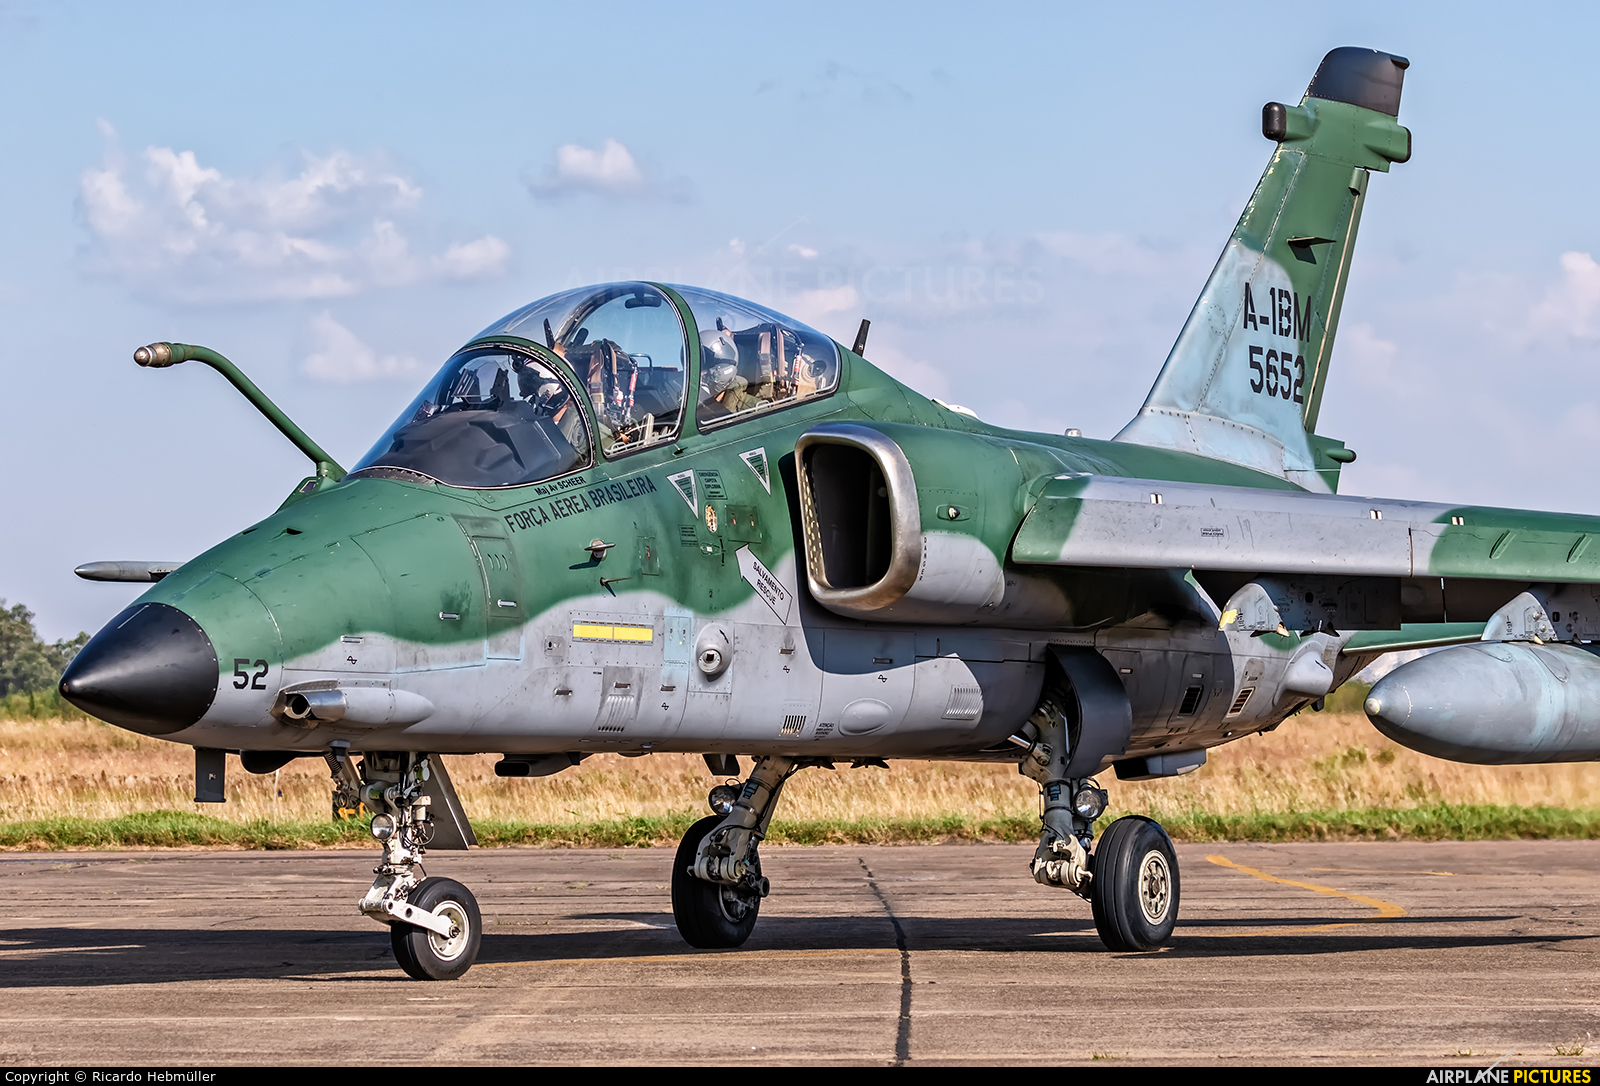 Brazil - Air Force 5652 aircraft at Canoas